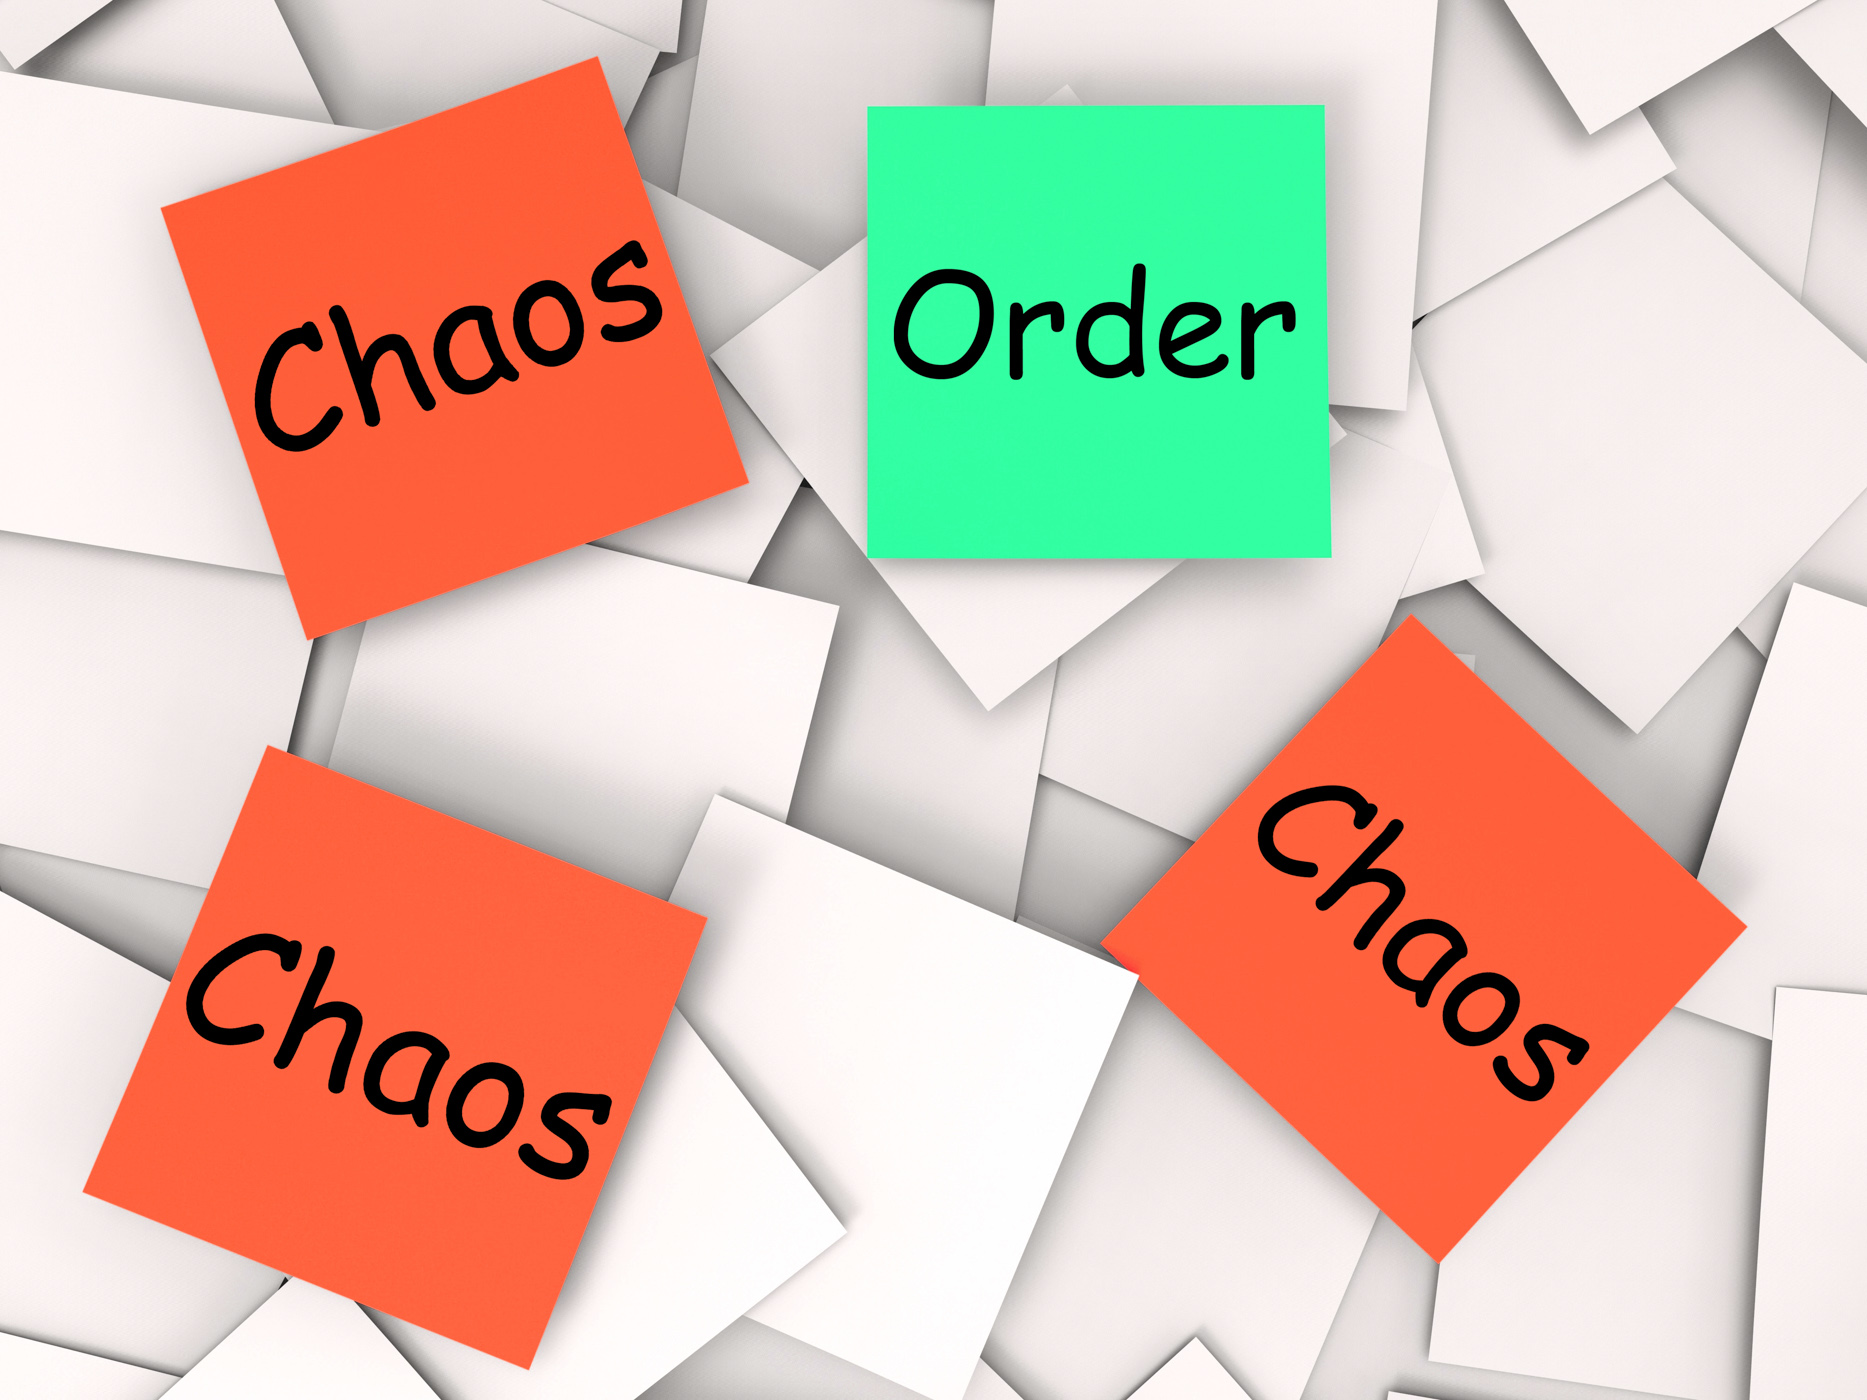 Order Chaos Post-It Notes Mean Orderly Or Chaotic, Anarchy, Ordered, System, Structure, HQ Photo